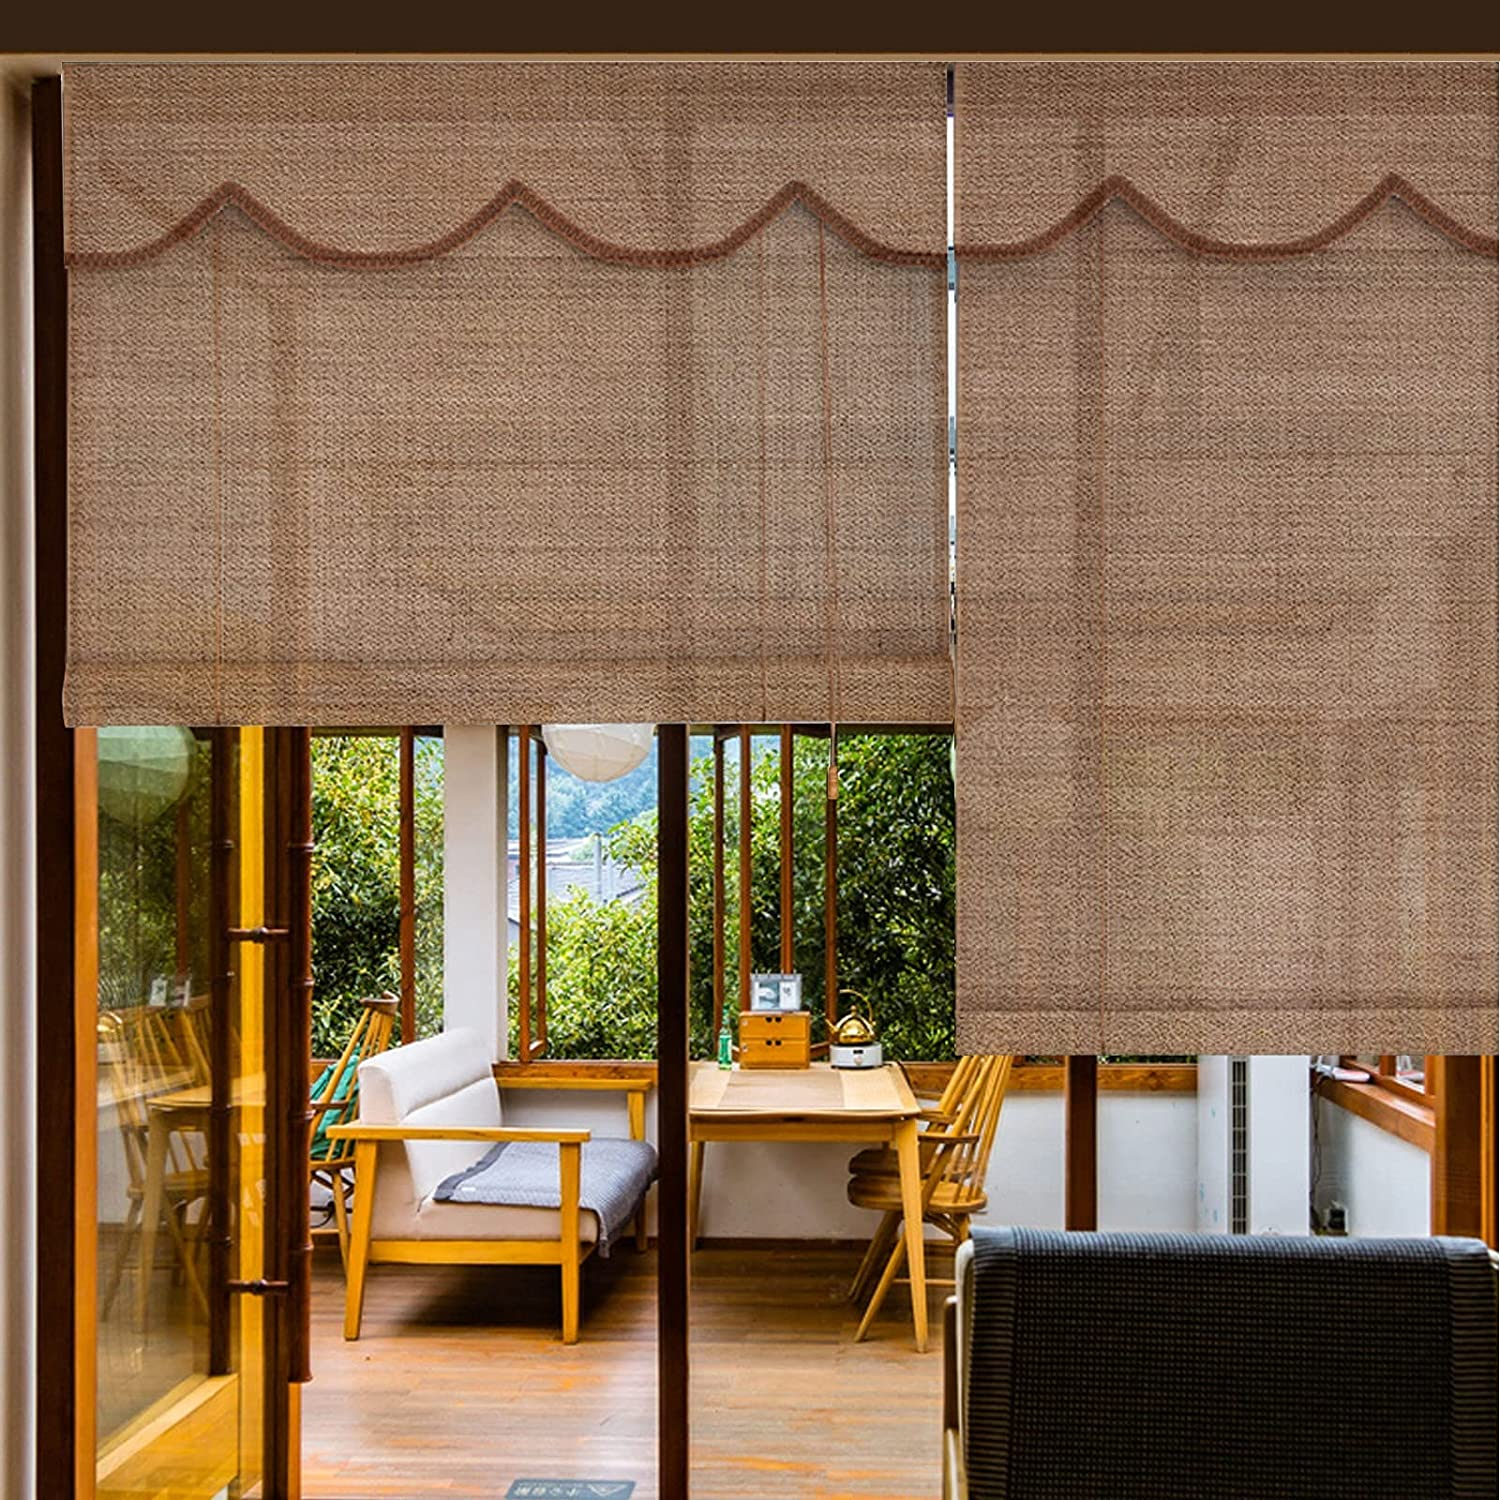 Bamboo Shade Retro Free Shipping New Curtain Blinds Natural - Max 72% OFF Roller